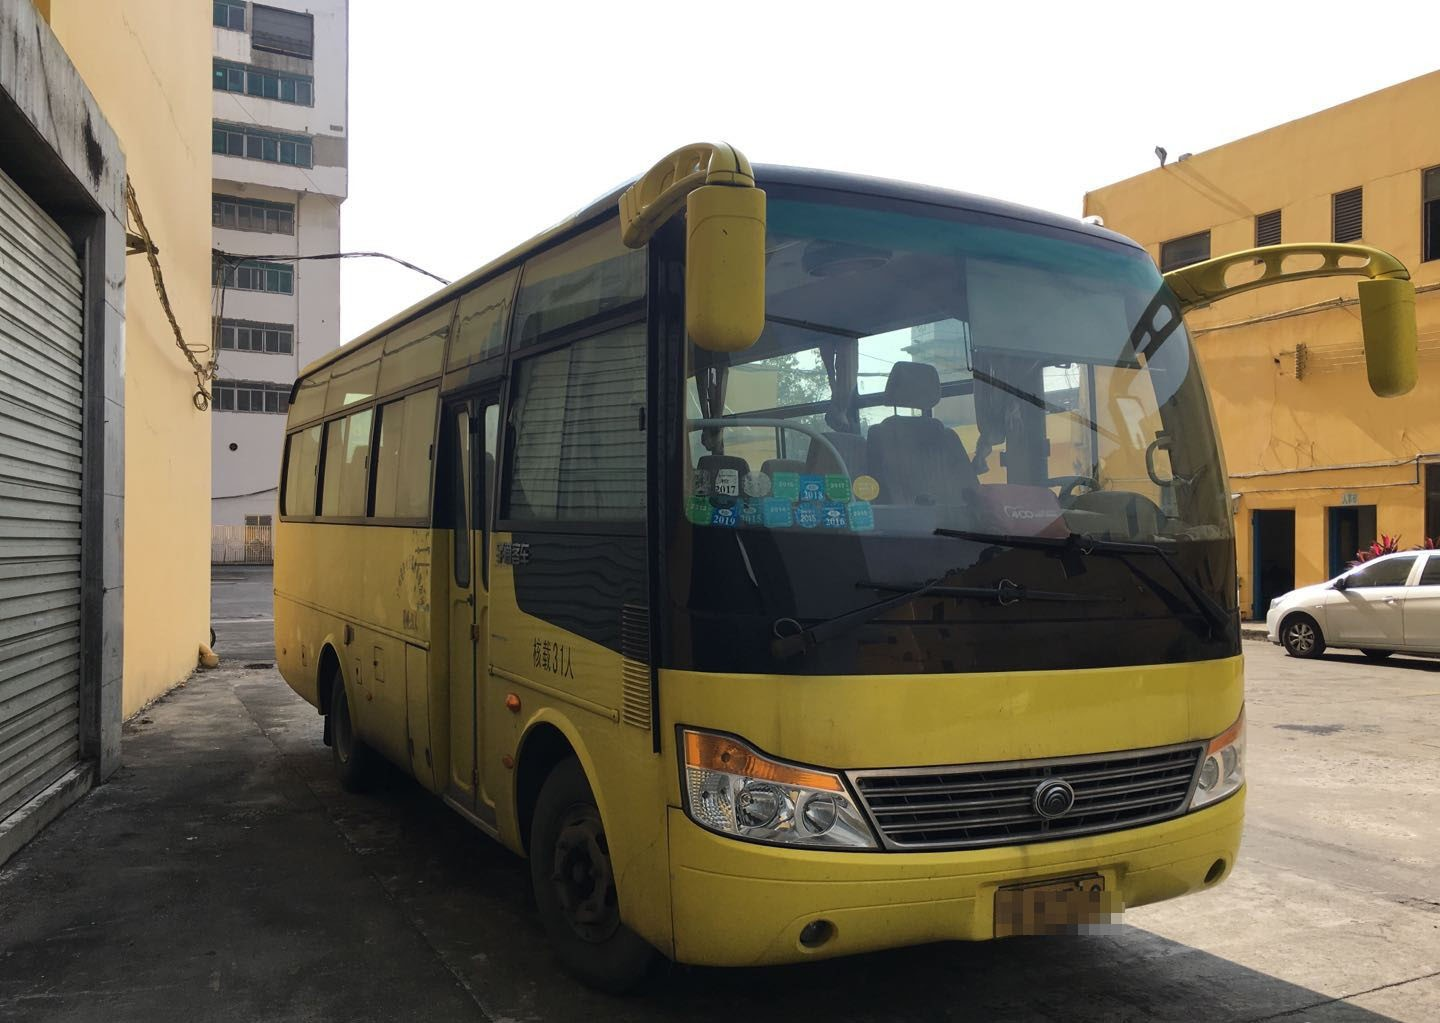 Middle Size Coach Second Hand , Used Bus And Coach 2012 Year With 31 Seats